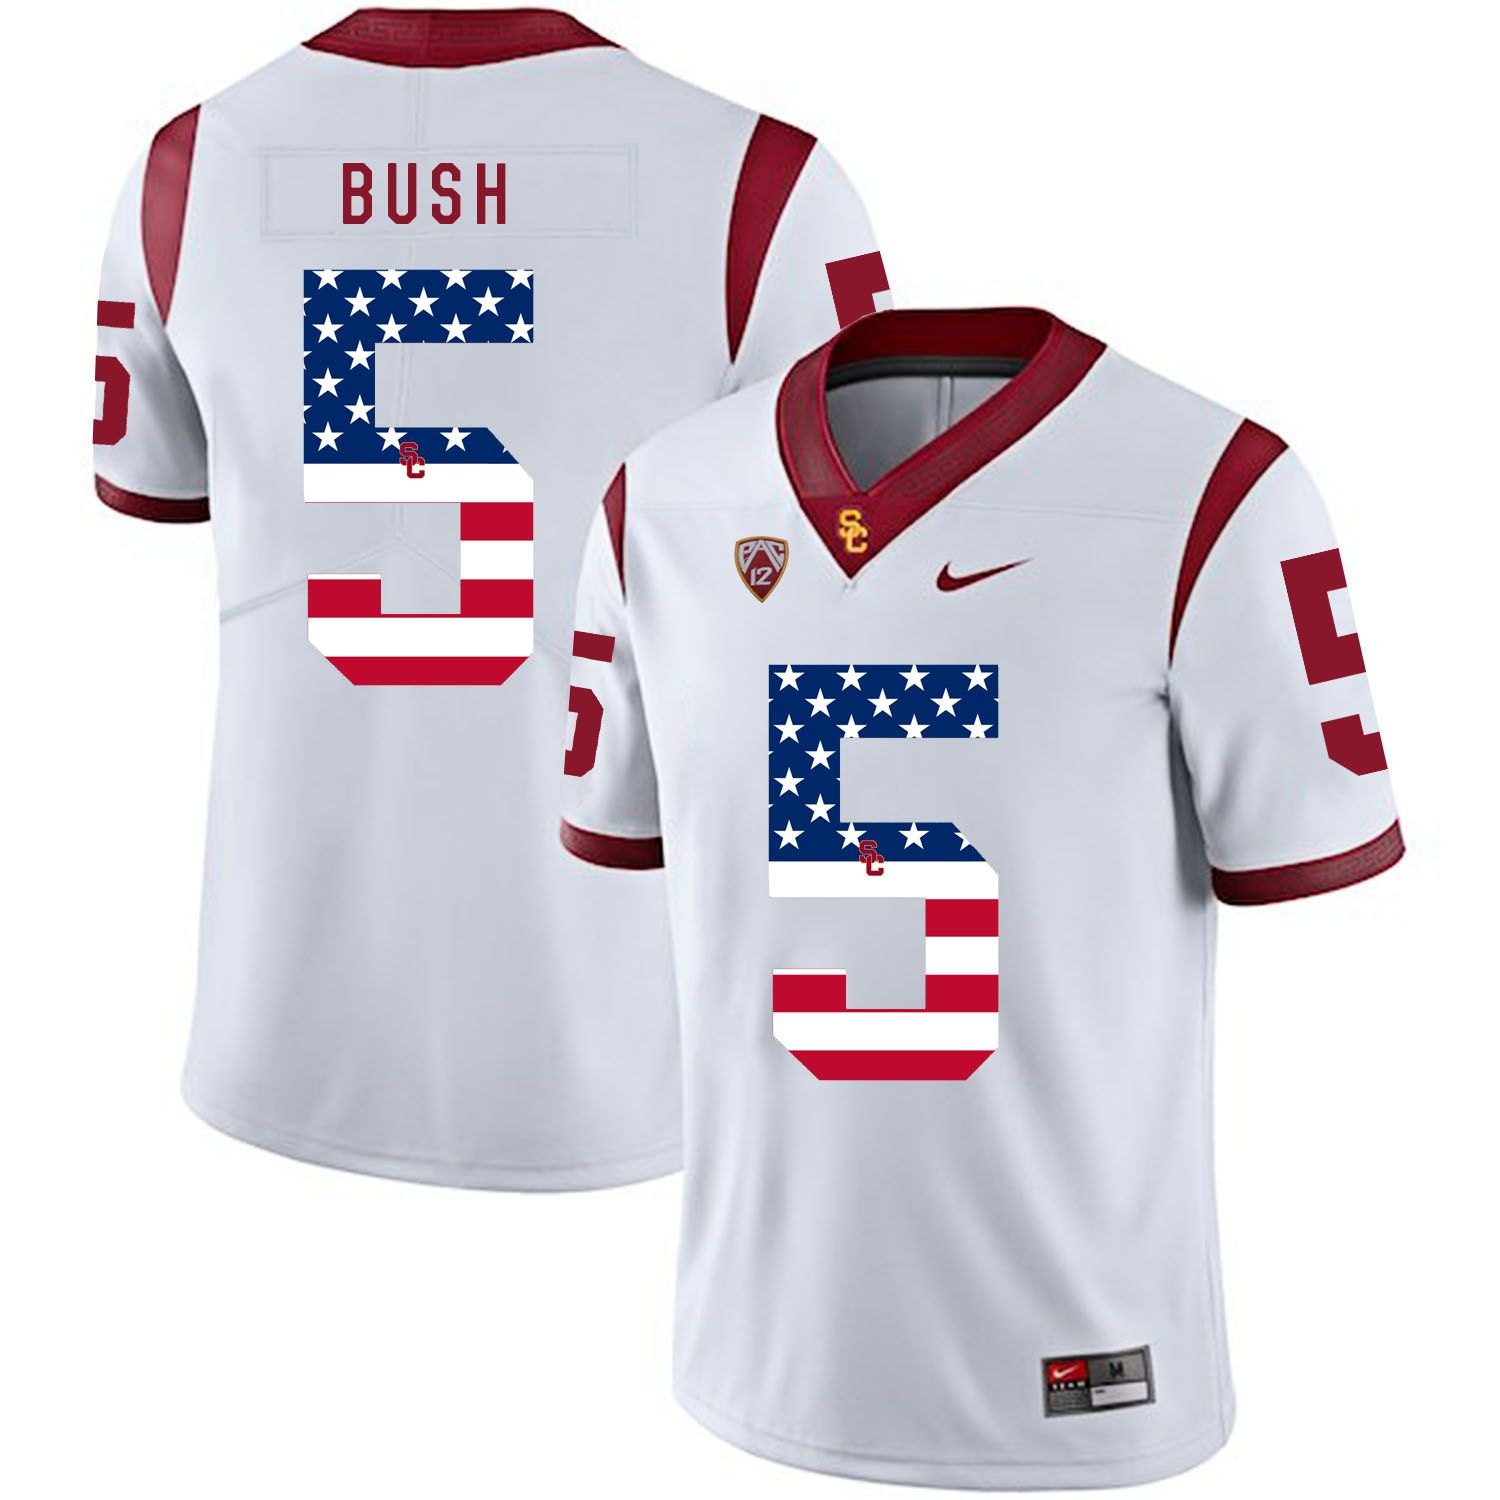 Men USC Trojans 5 Bush White Flag Customized NCAA Jerseys